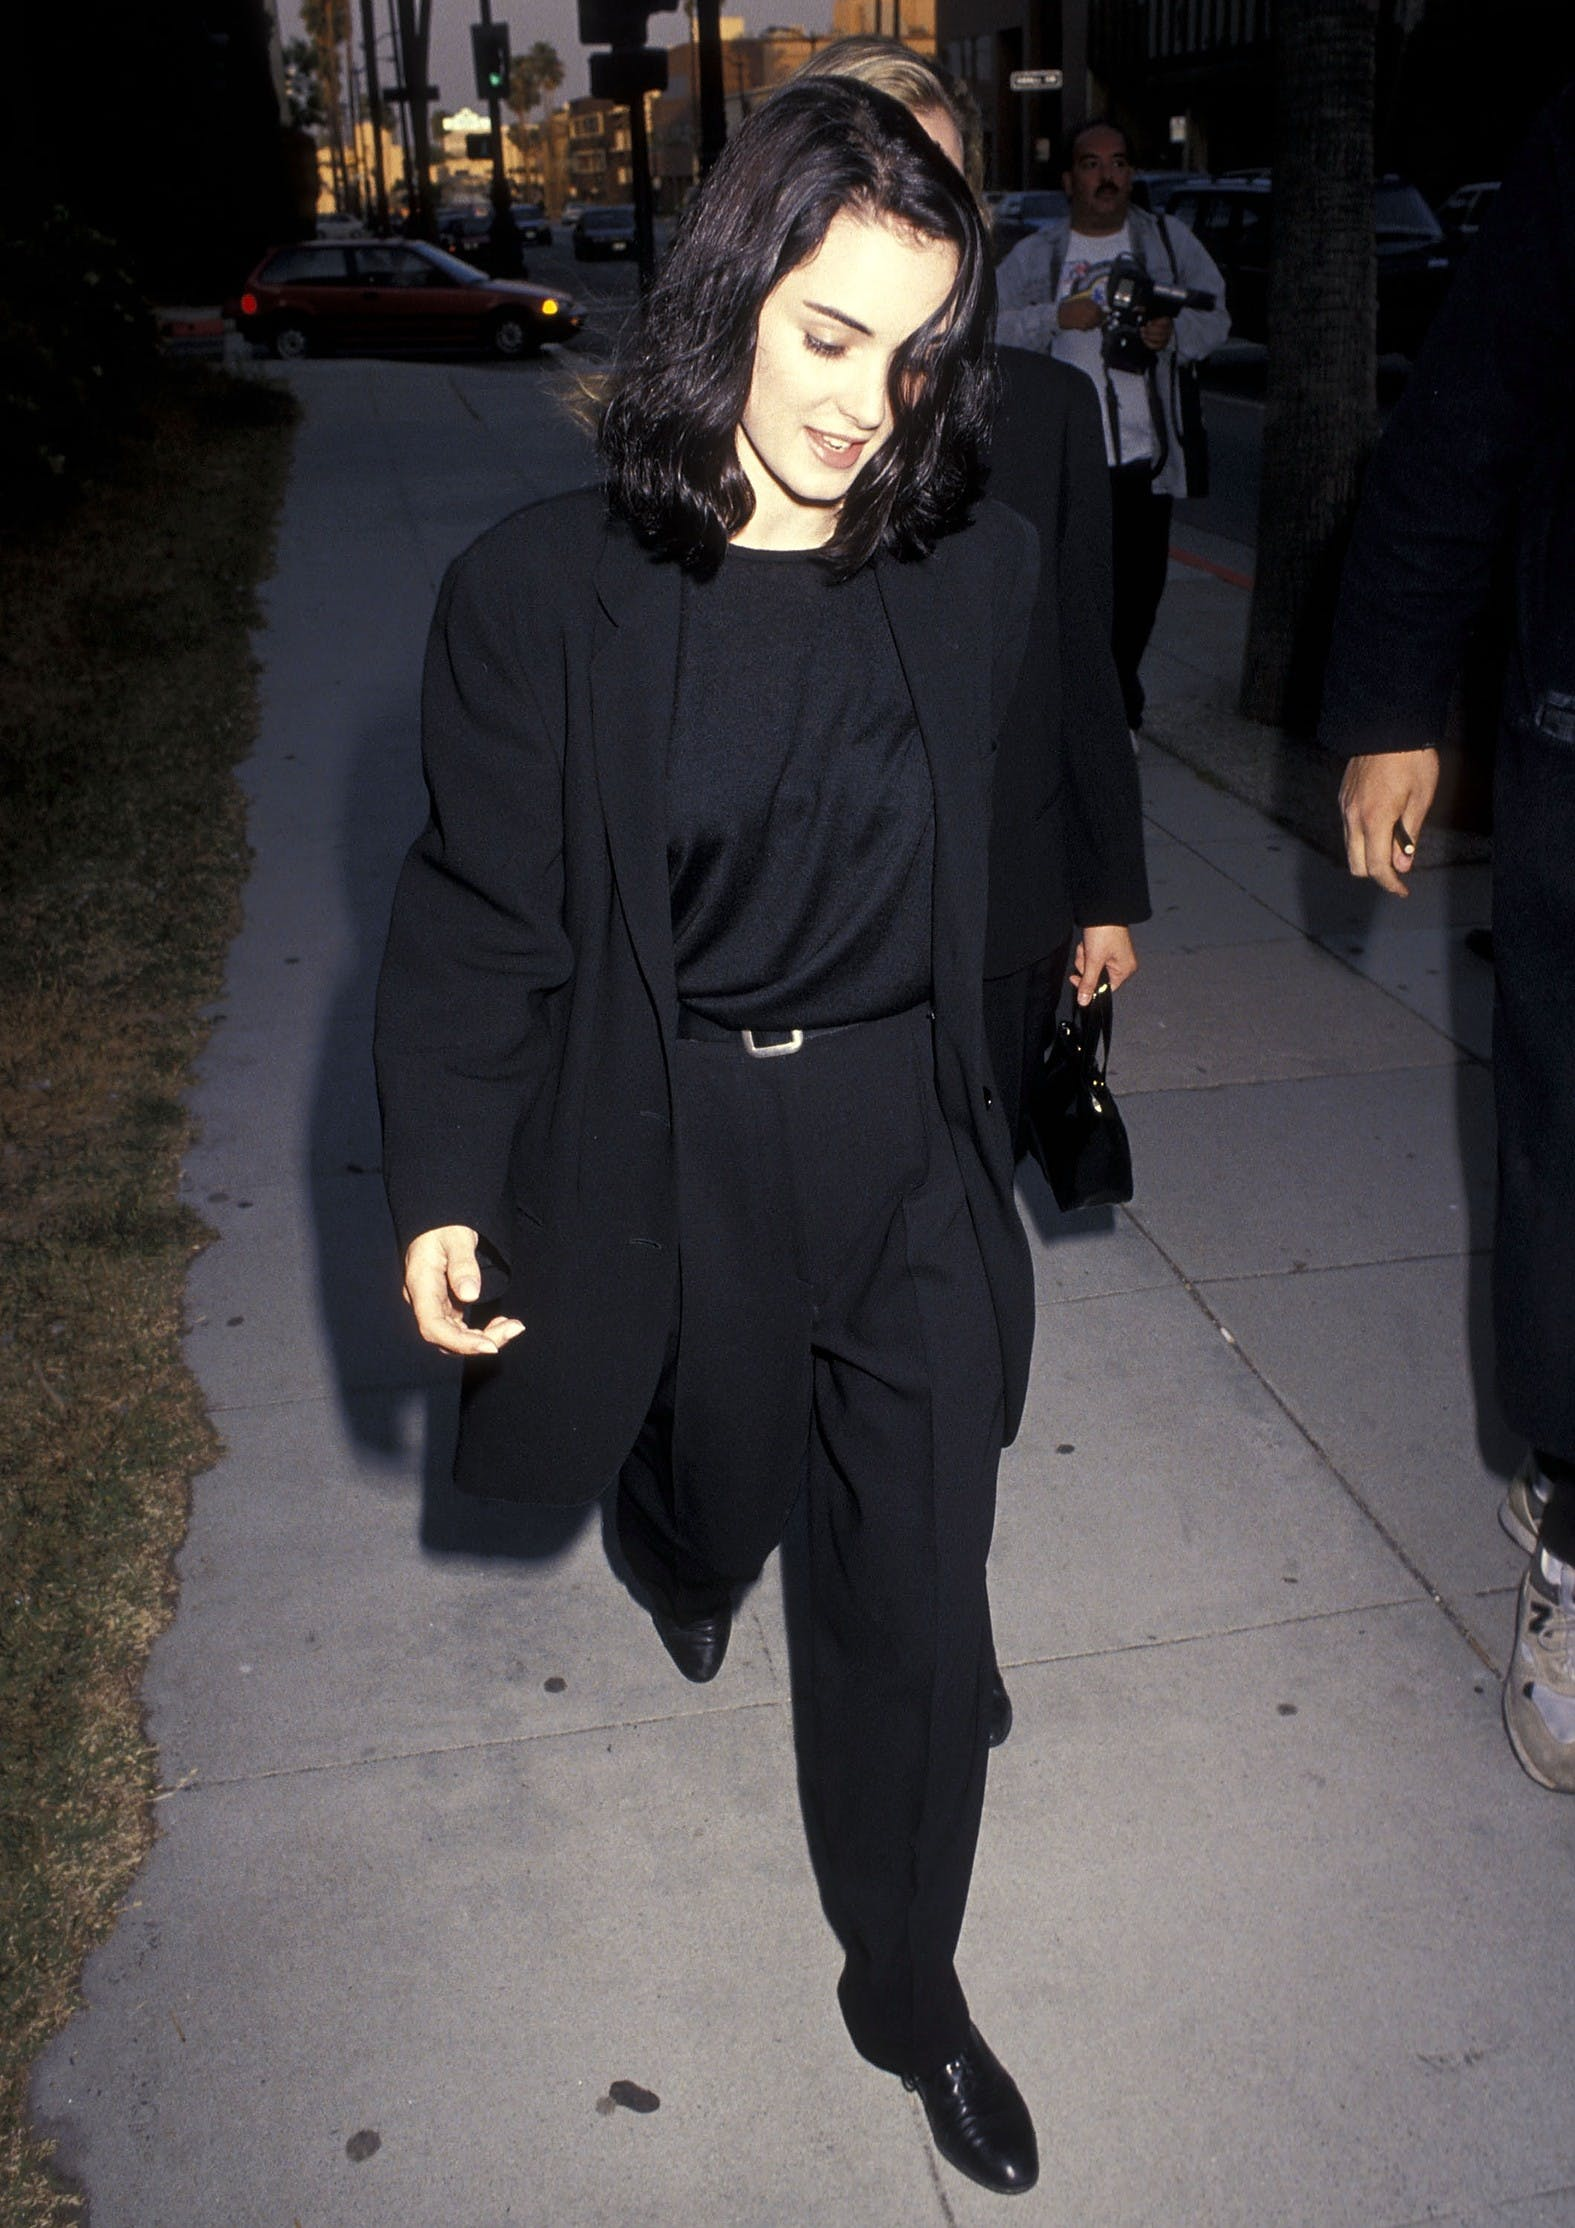 Winona Ryder at the Backdraft Beverly Hills premiere in 1991.